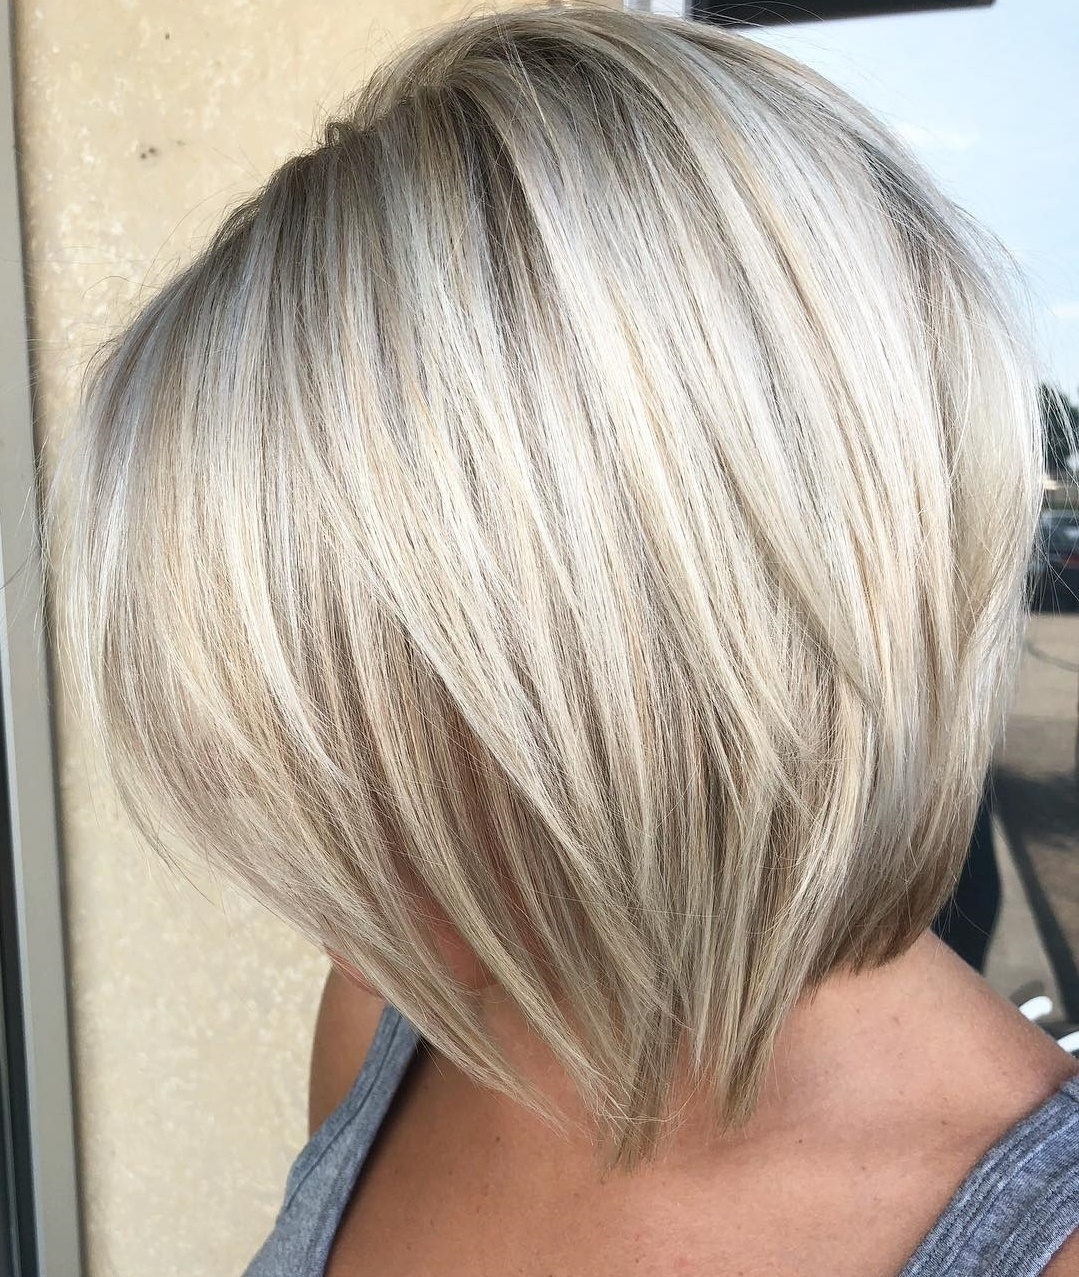 45 Short Hairstyles For Fine Hair To Rock In 2019 inside Good Hairstyle For Thin Fine Gray Hair